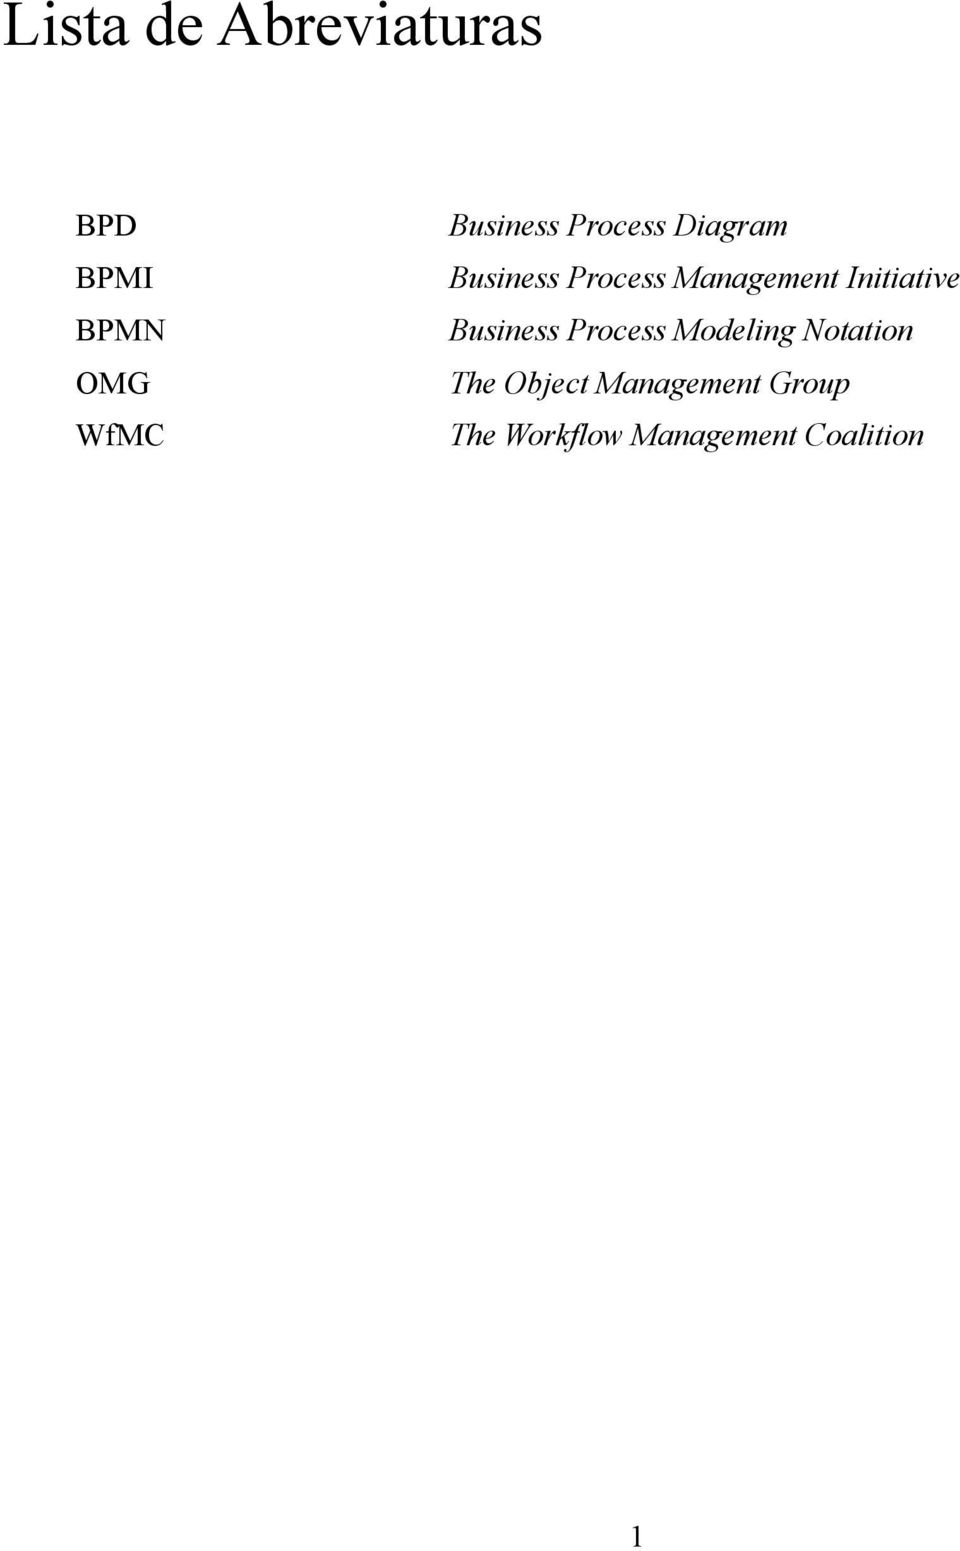 Management Initiative Business Process Modeling